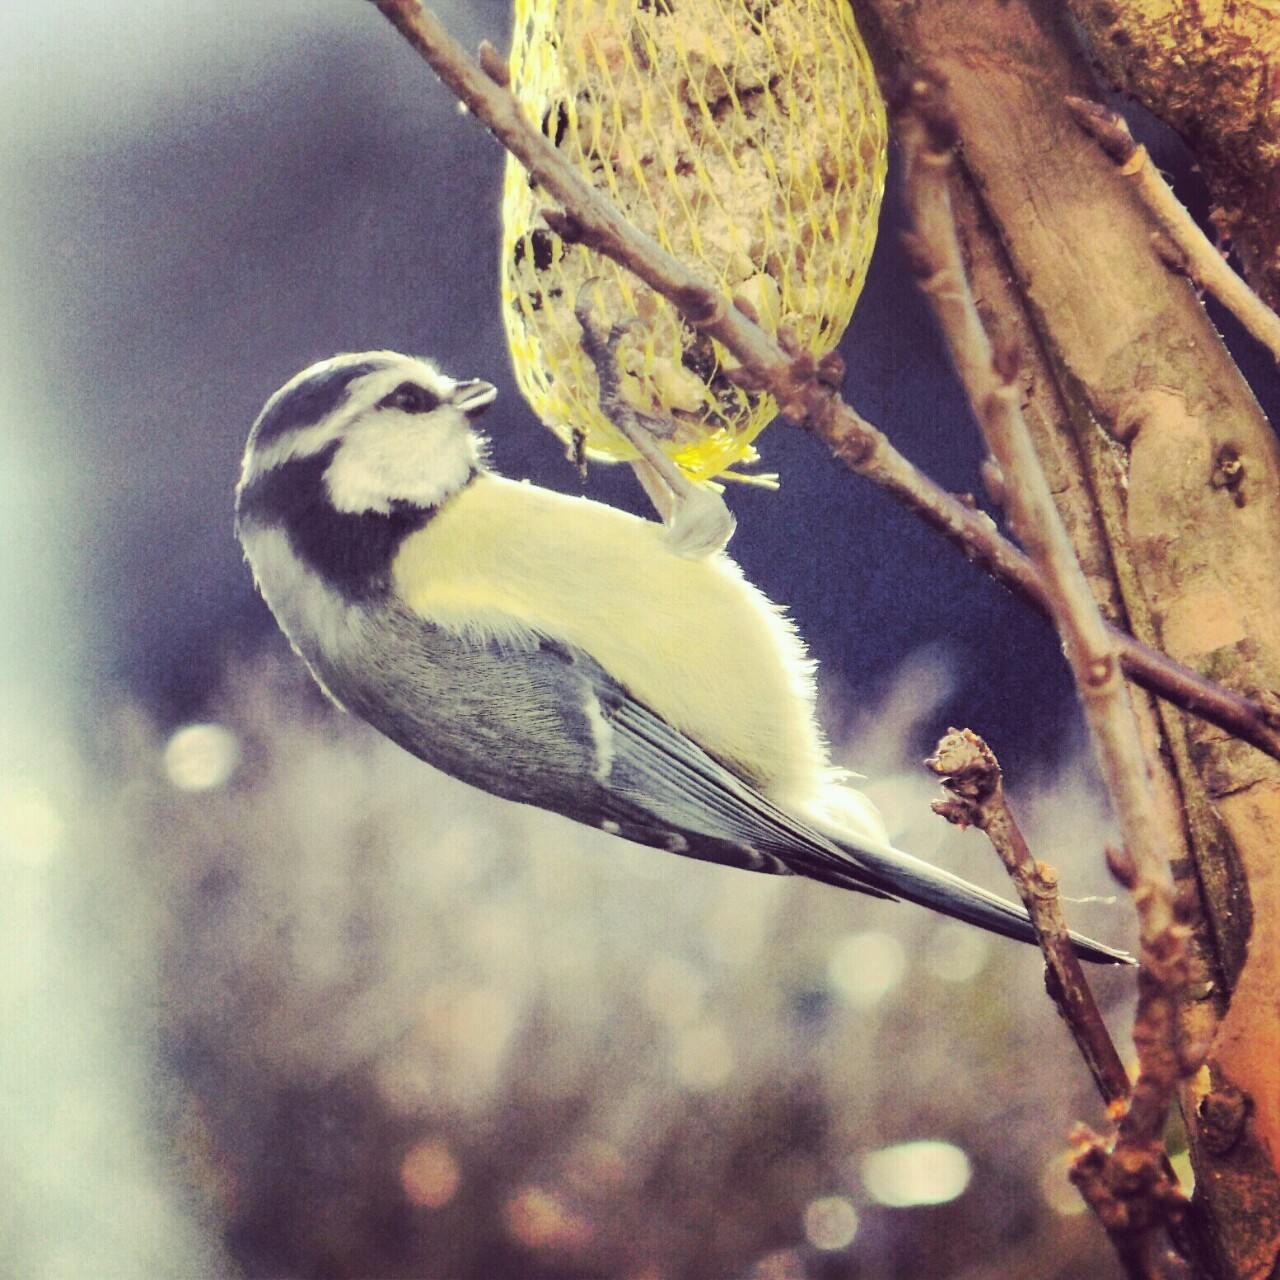 Another bluetit. xD